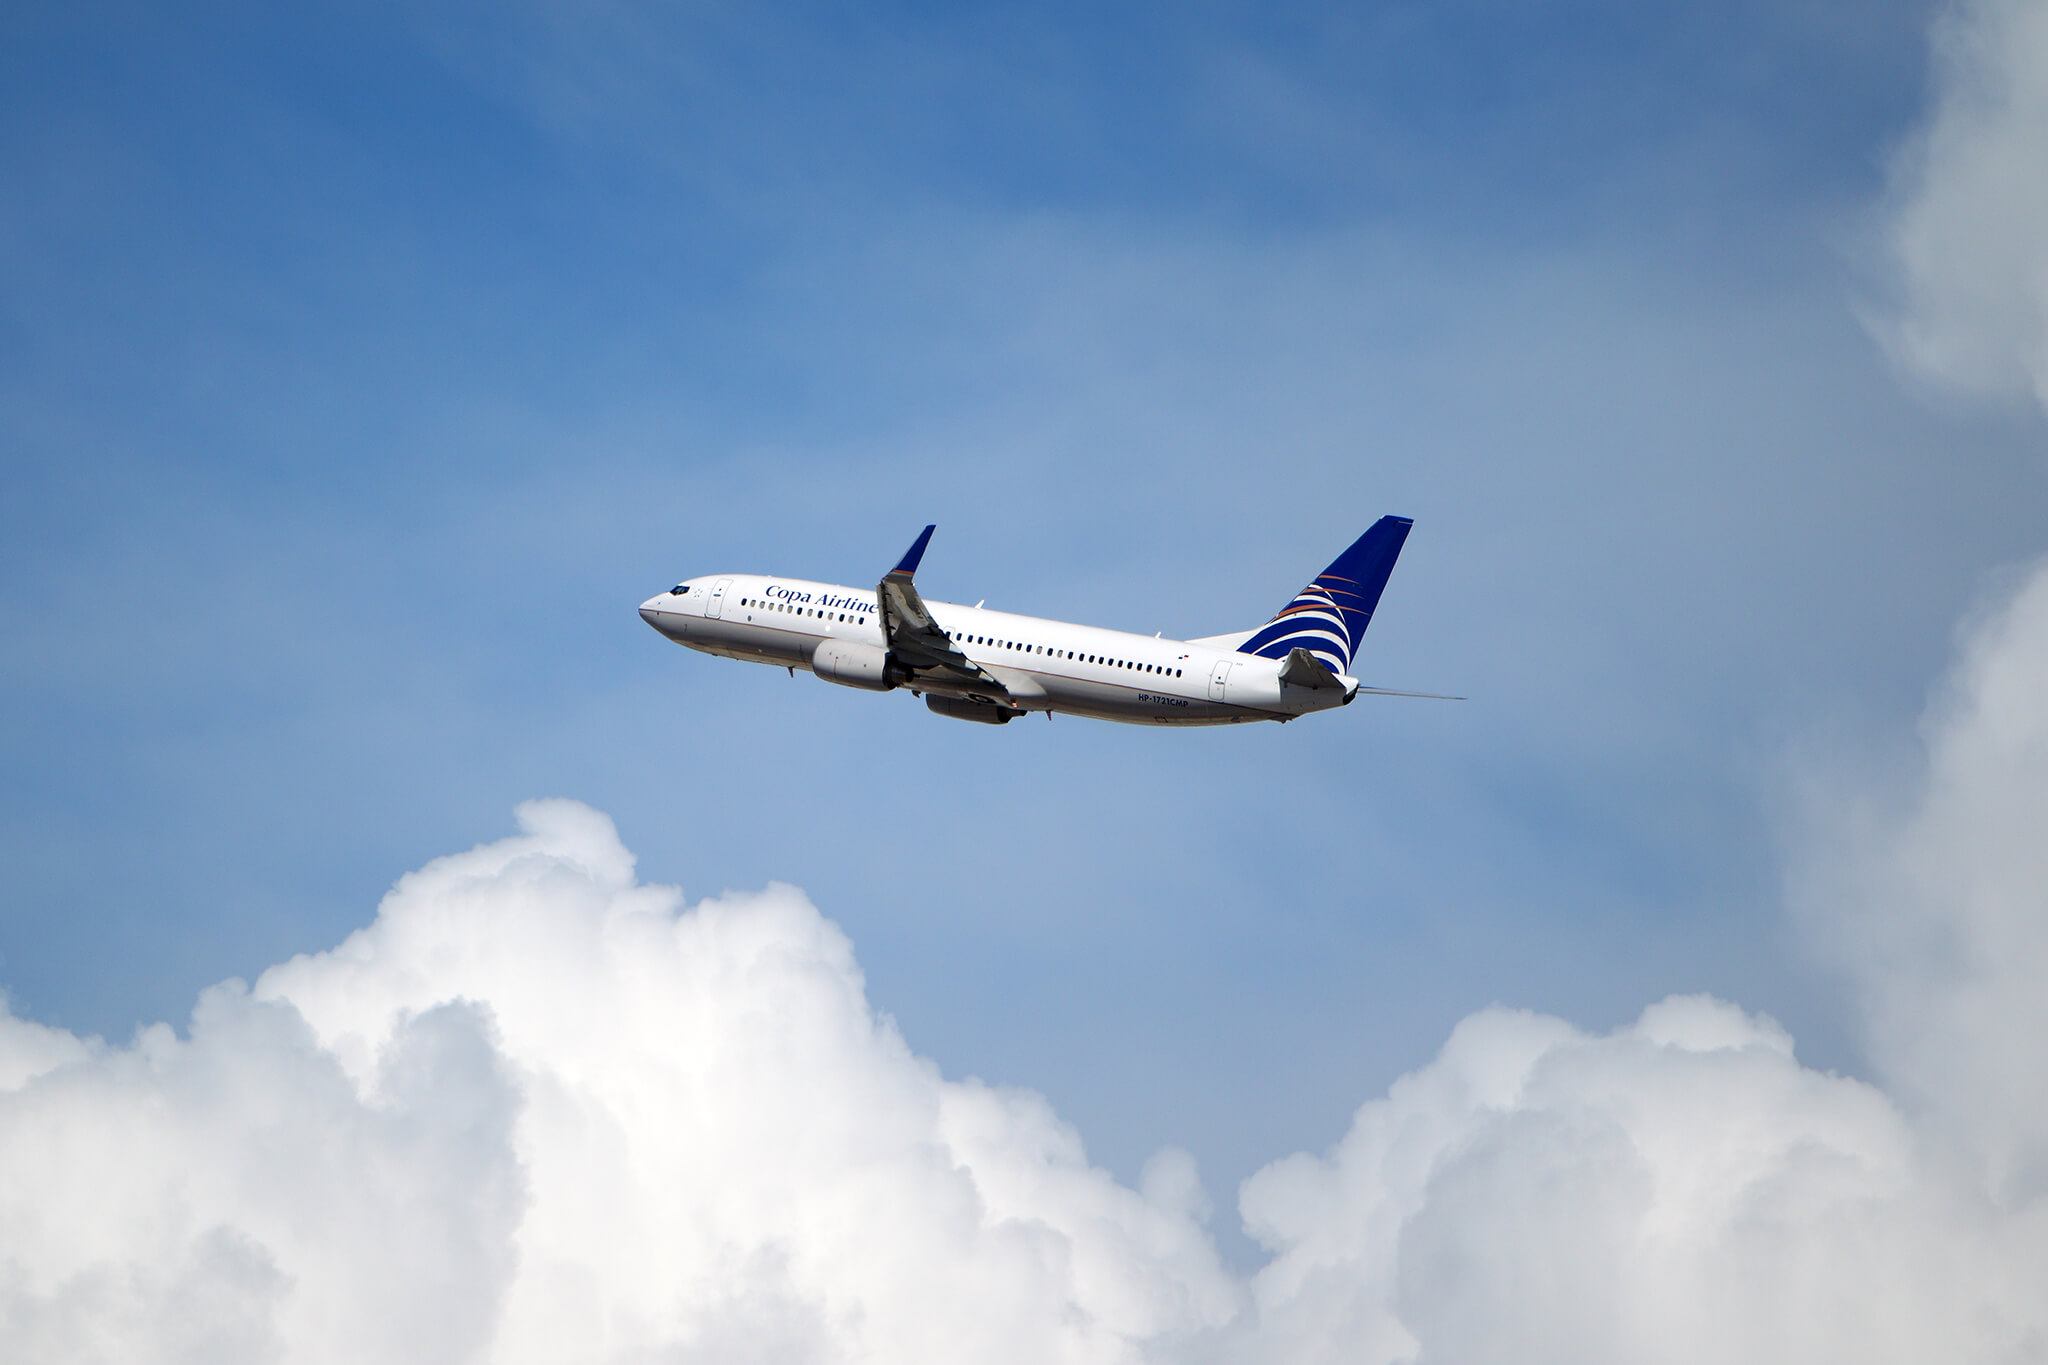 Copa Airlines plan flying to The Day After Festival